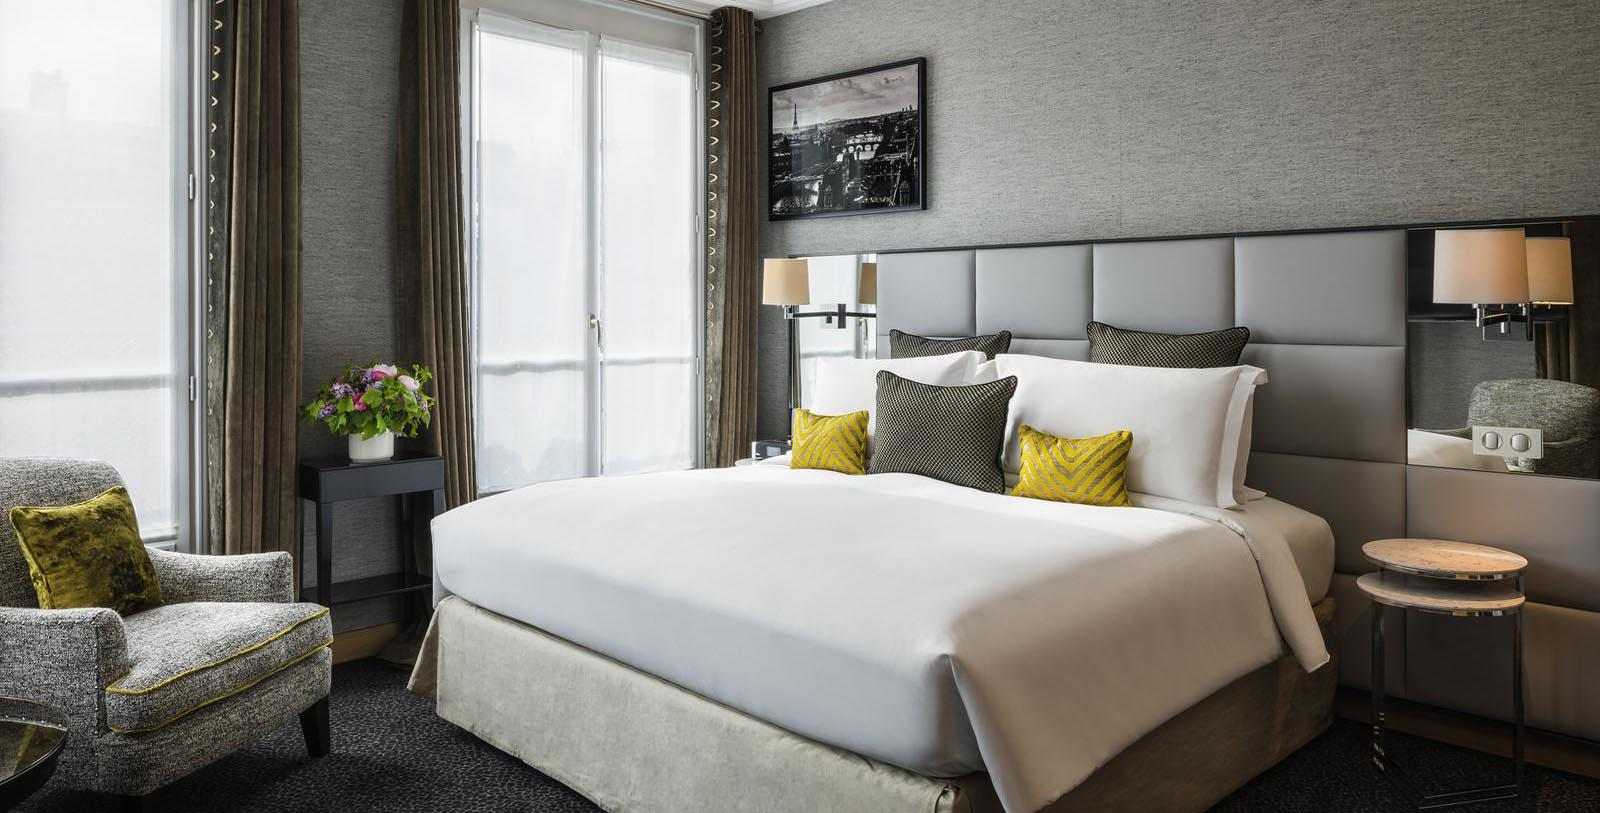 Image of Guestroom at Sofitel Paris Baltimore Tour Eiffel, 1892, Member of Historic Hotels Worldwide, in Paris, France, Location Map